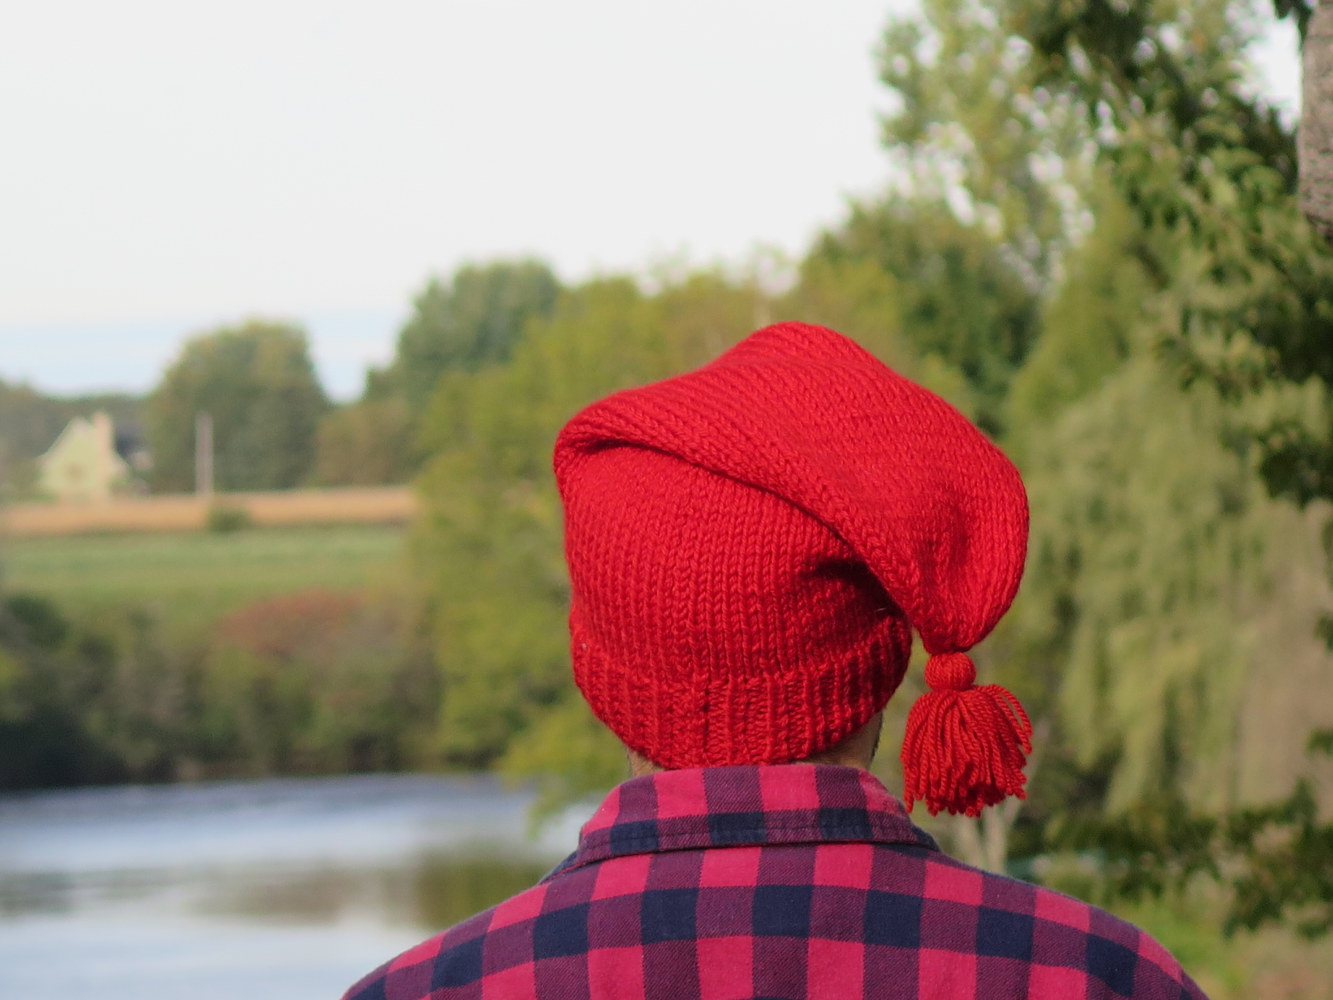 Tuque de patriote by Genevieve Desy